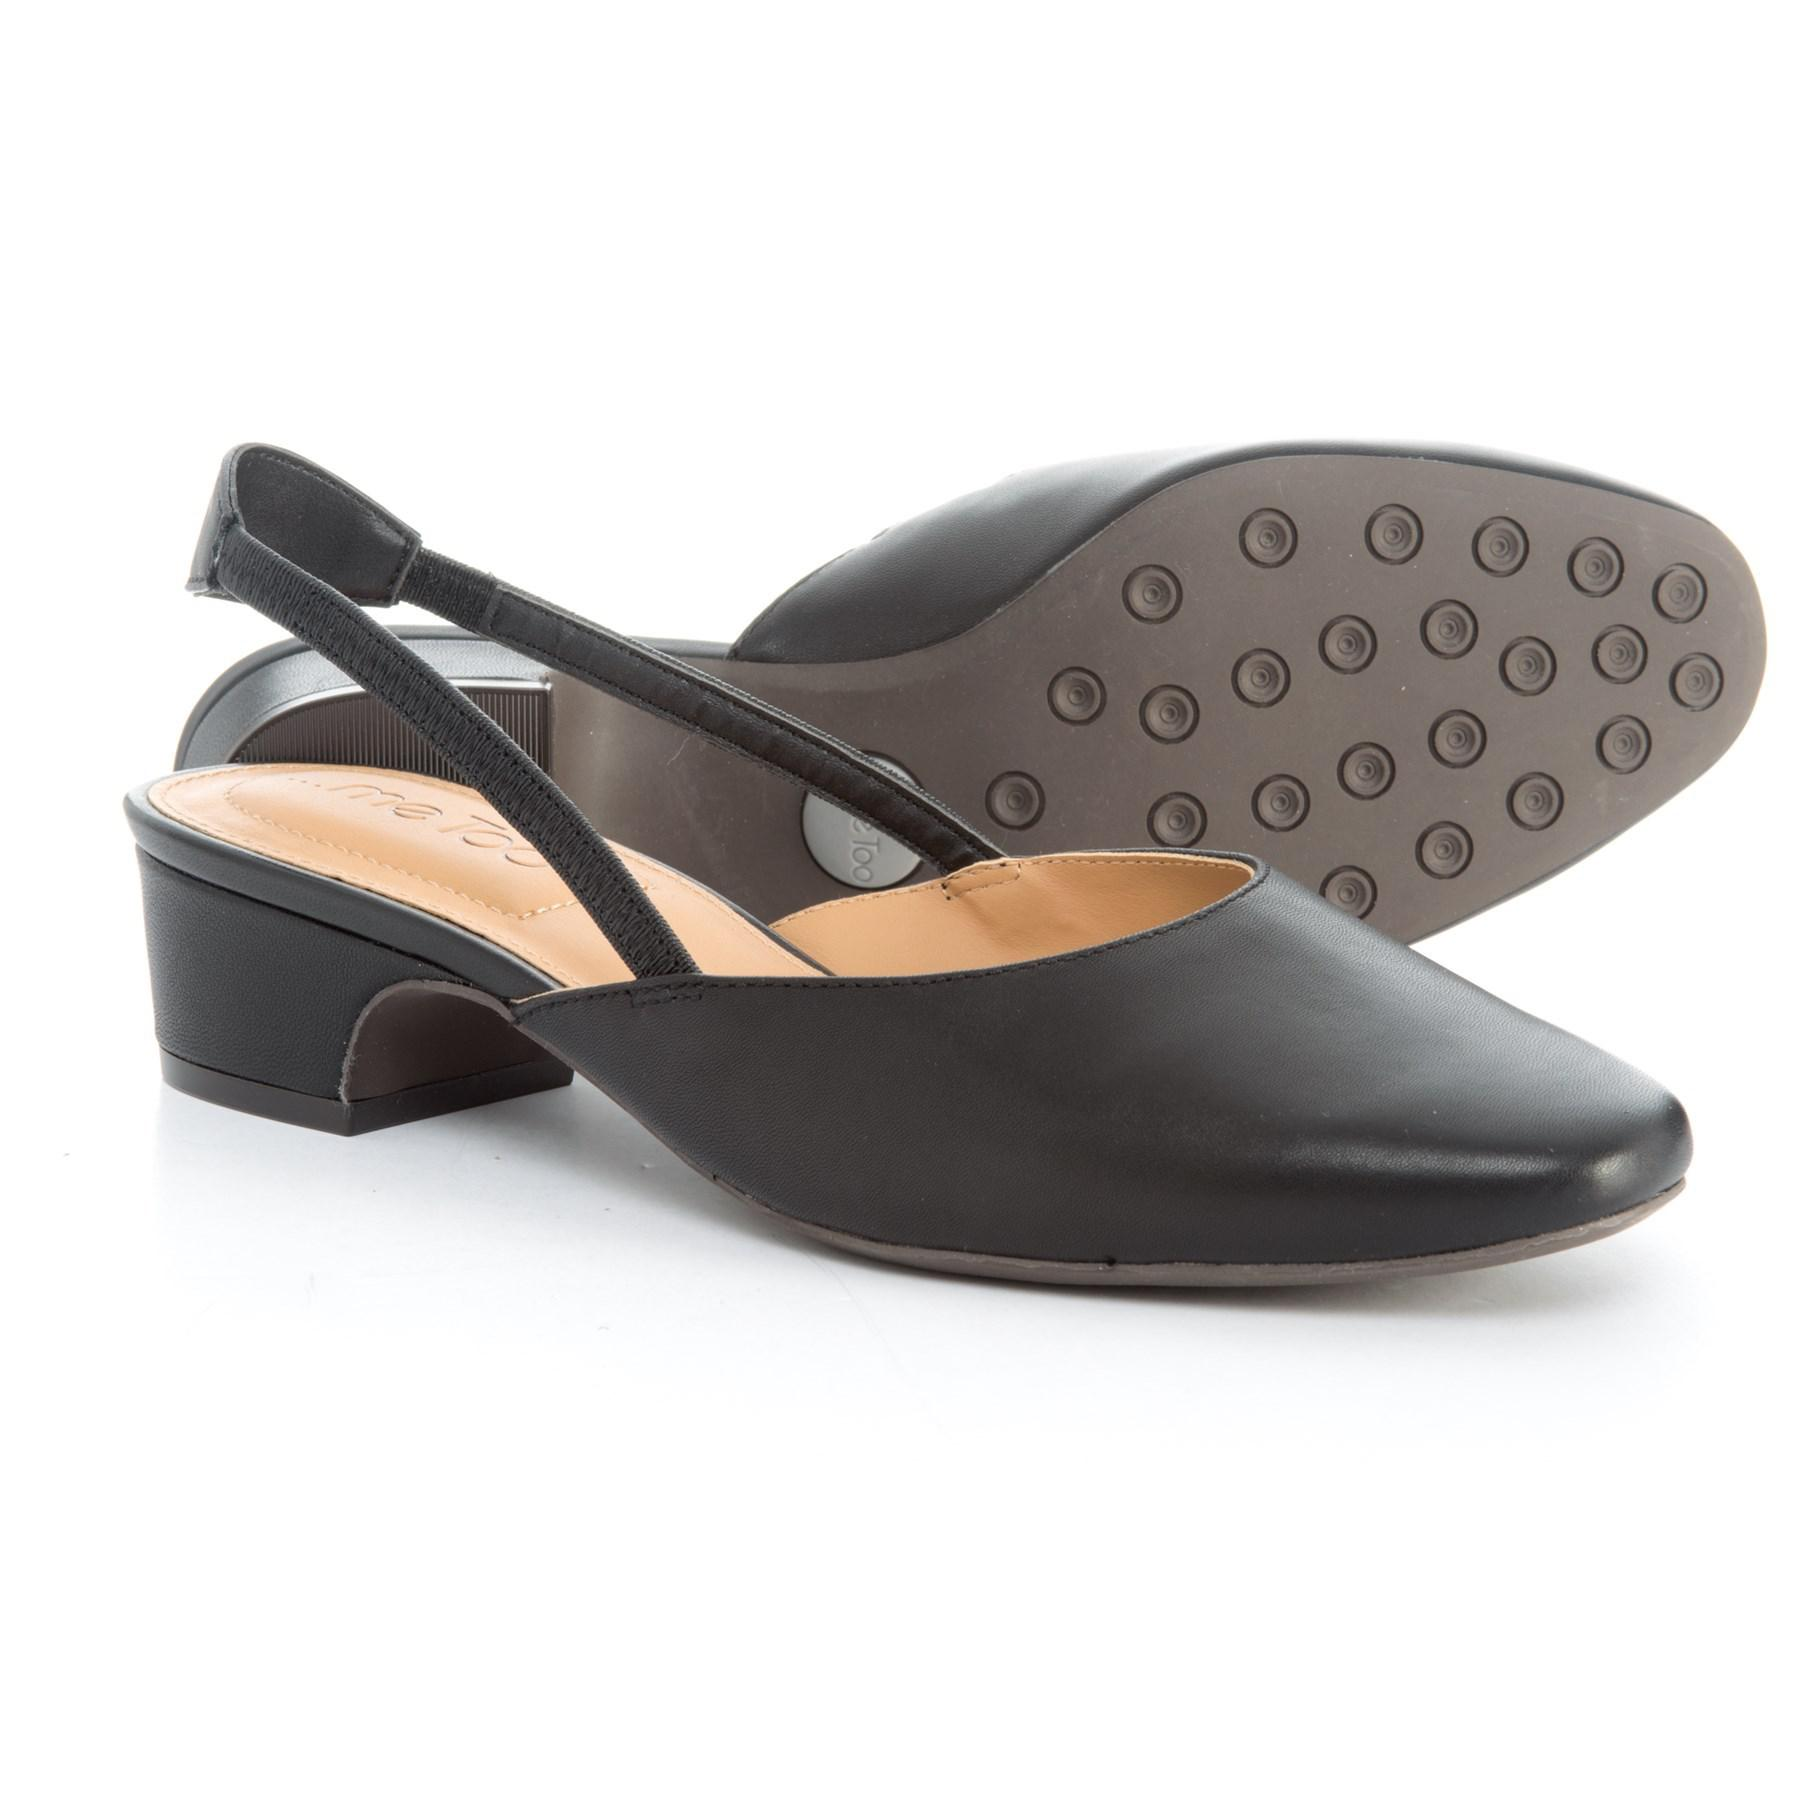 32cb32469f4 Lyst - Me Too Gianna1 Slingback Shoes in Black